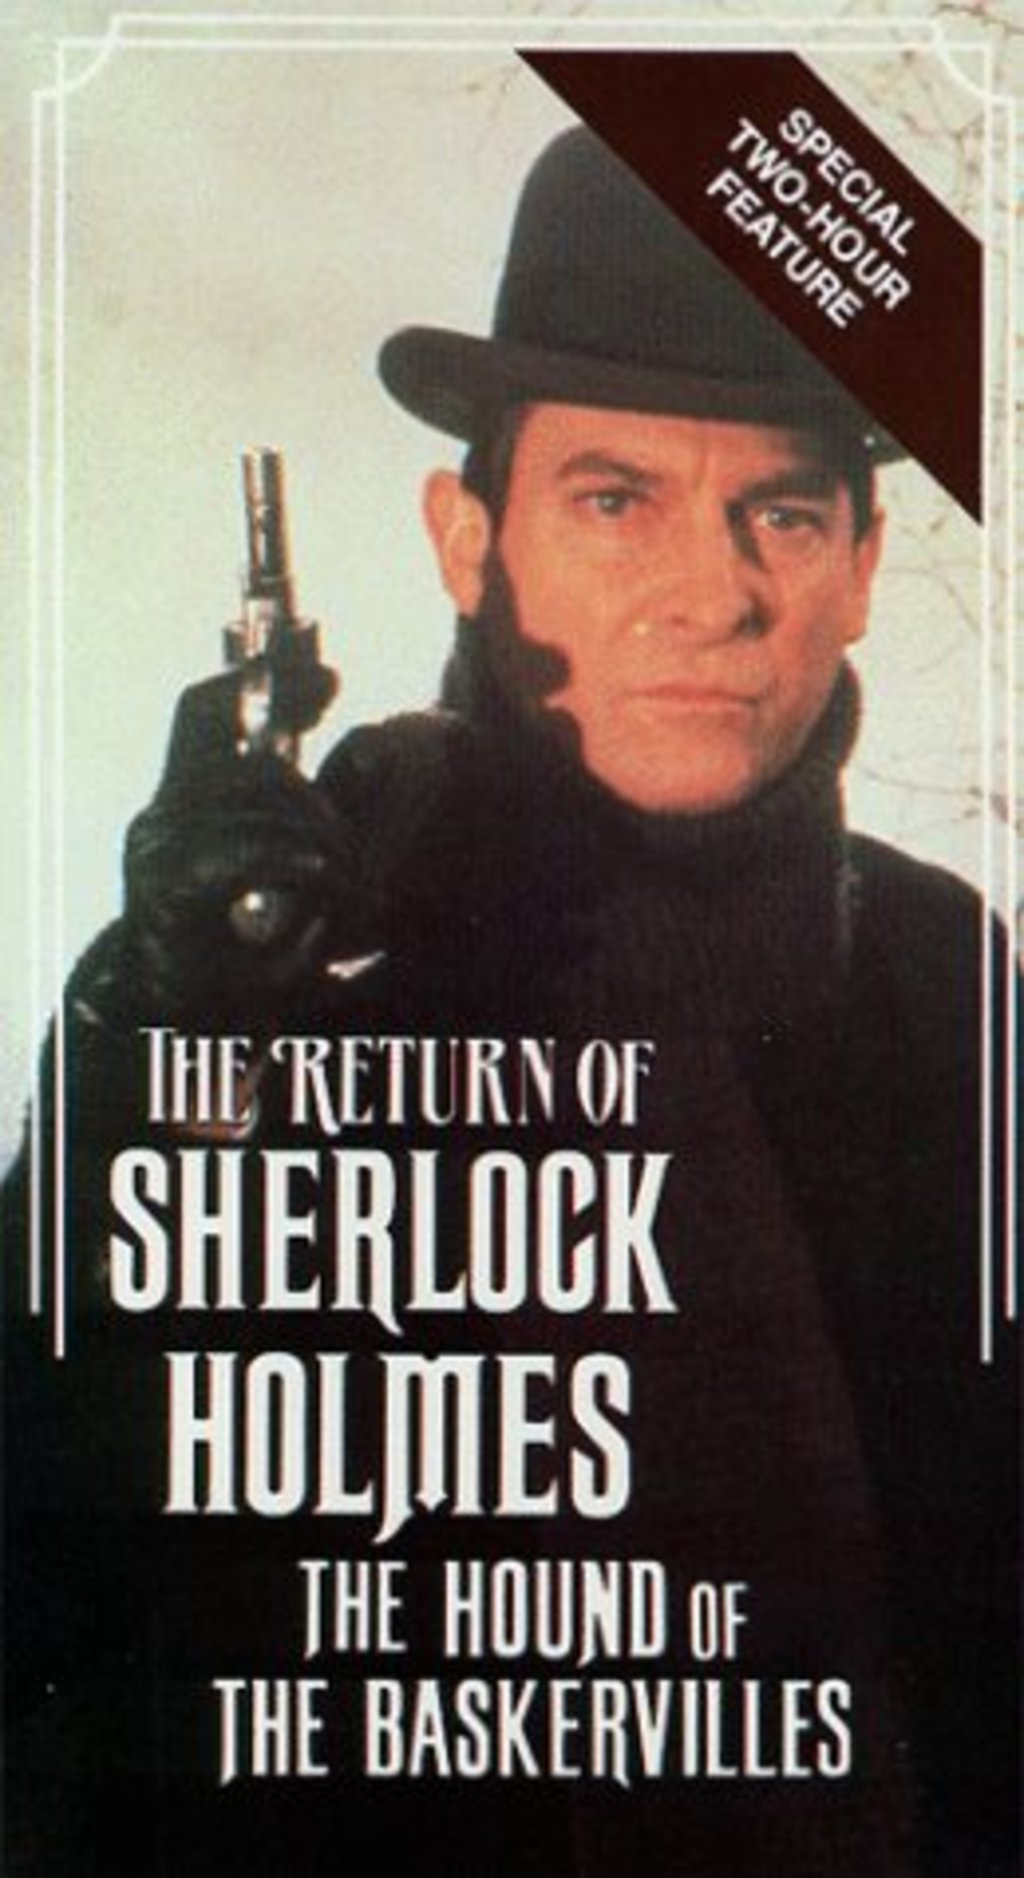 sherlock holmes the hound of the baskervilles movie 1988